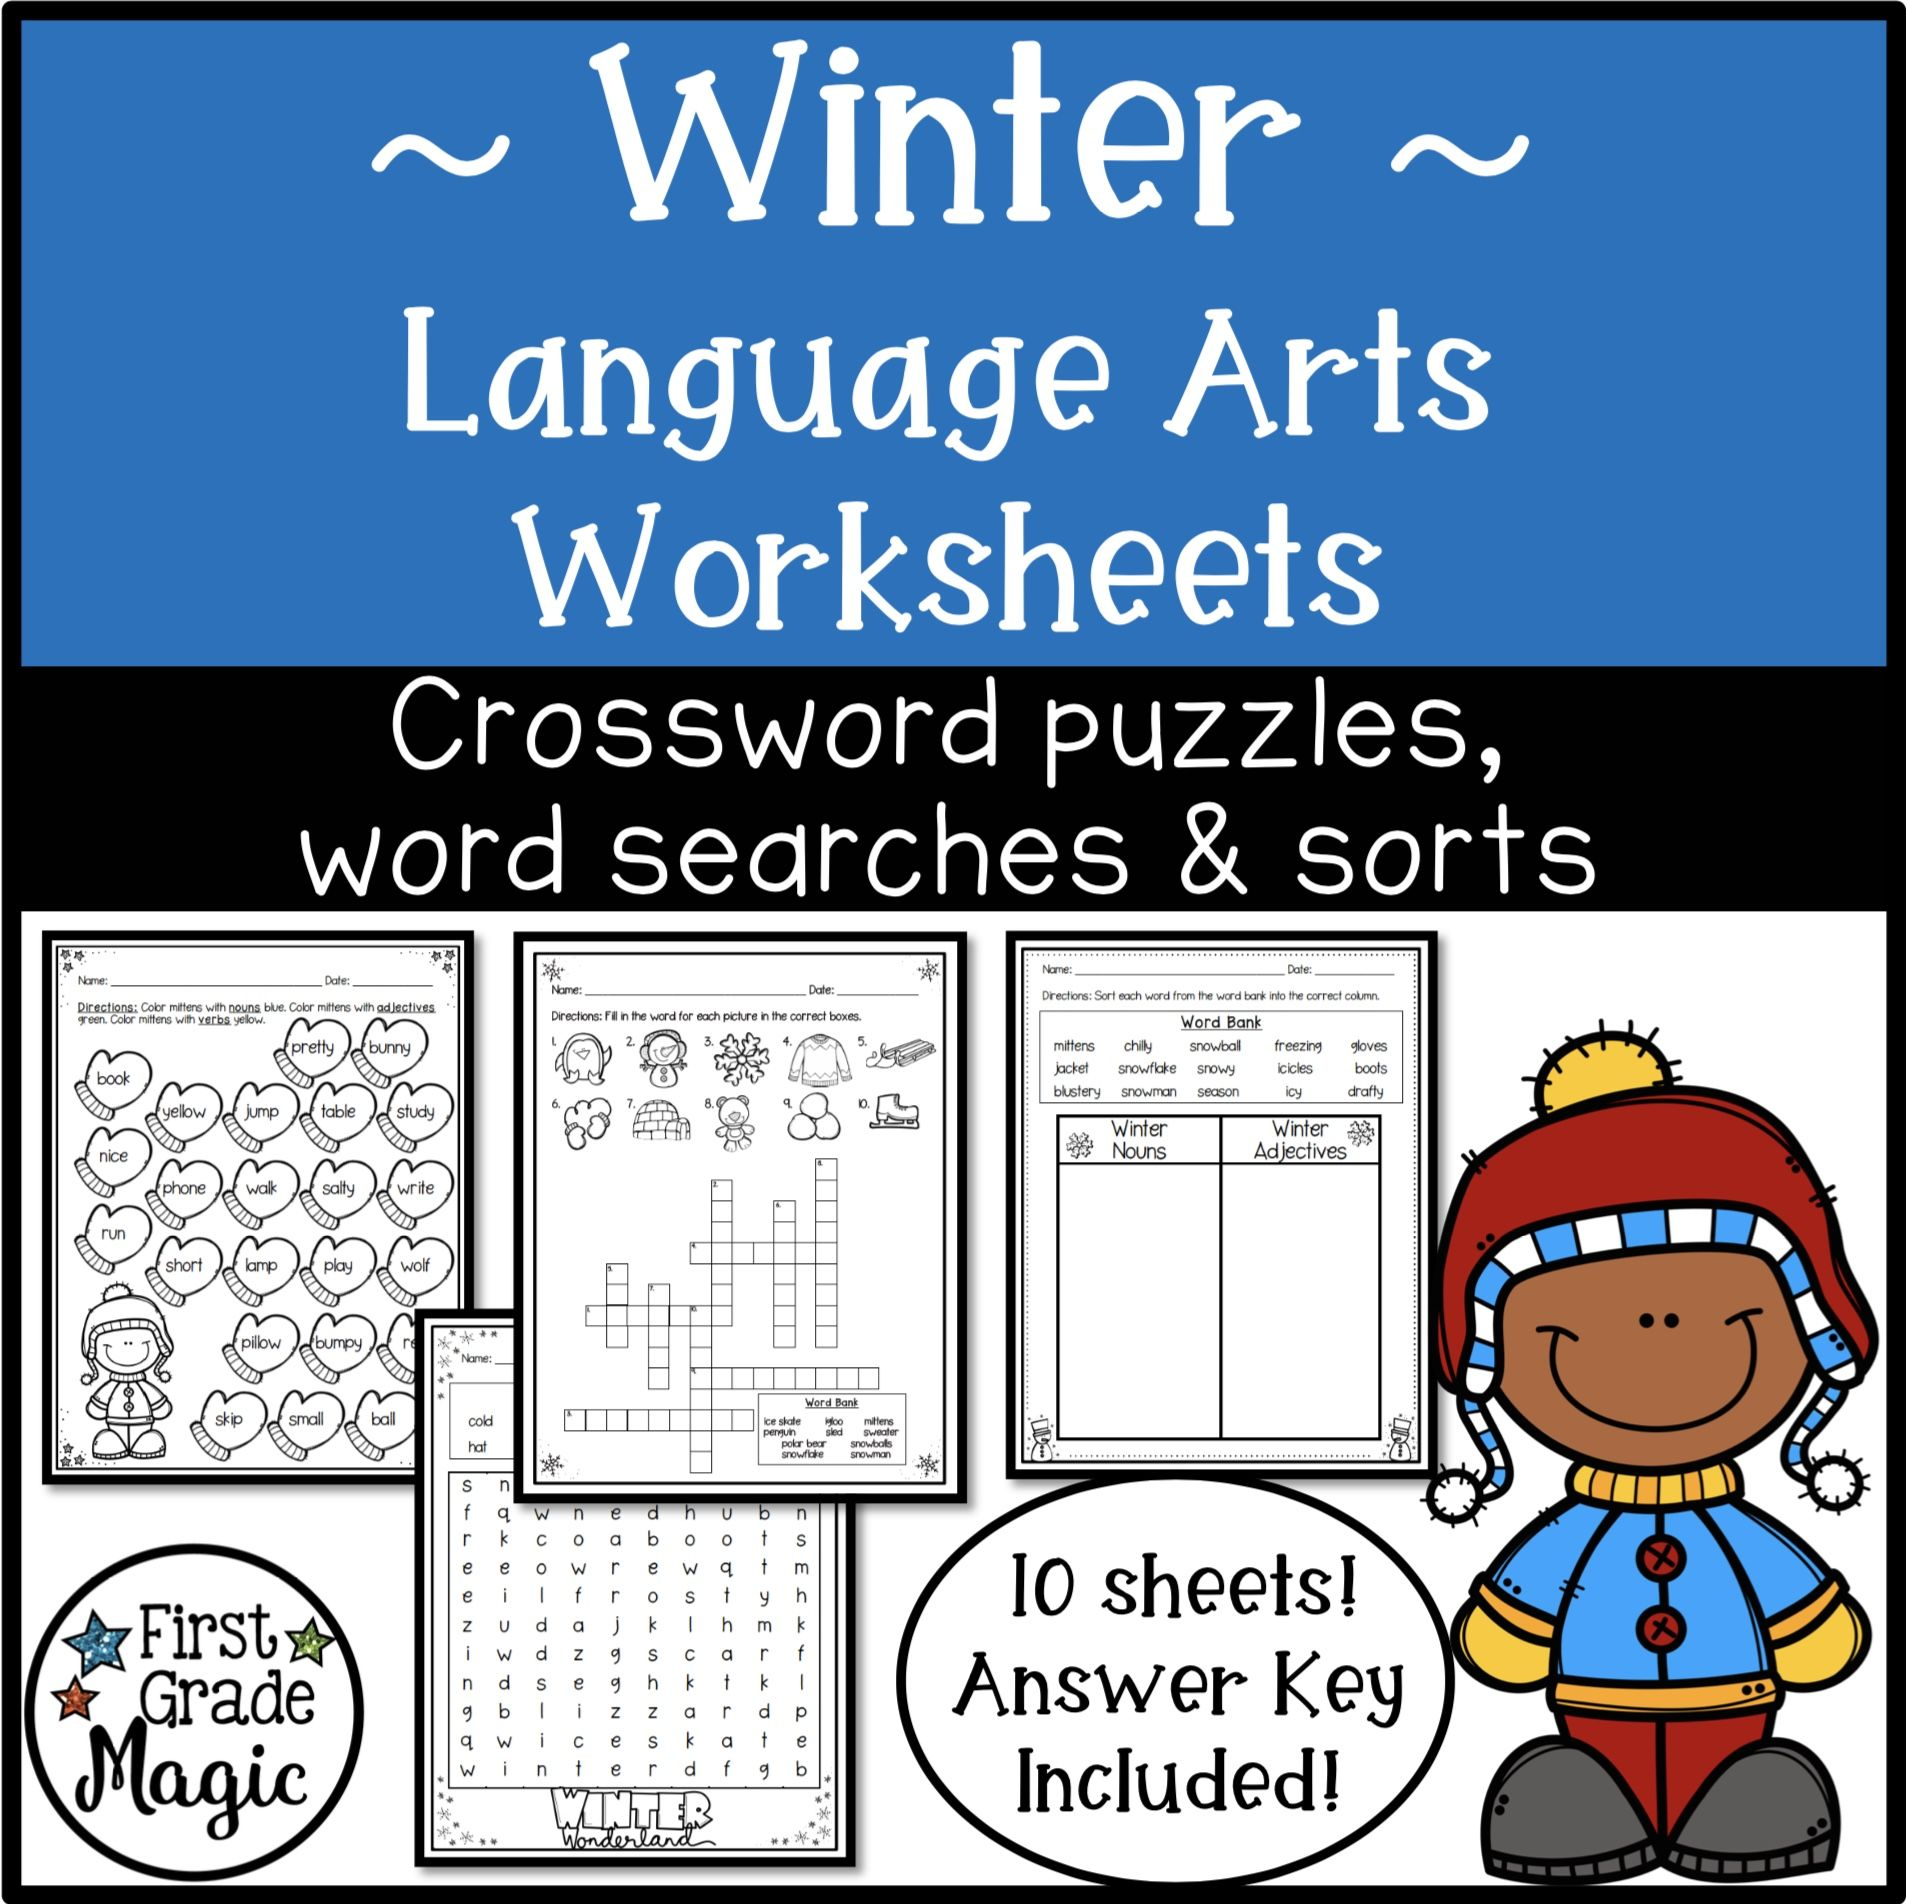 Winter Language Arts Crossword Puzzles Word Searches And